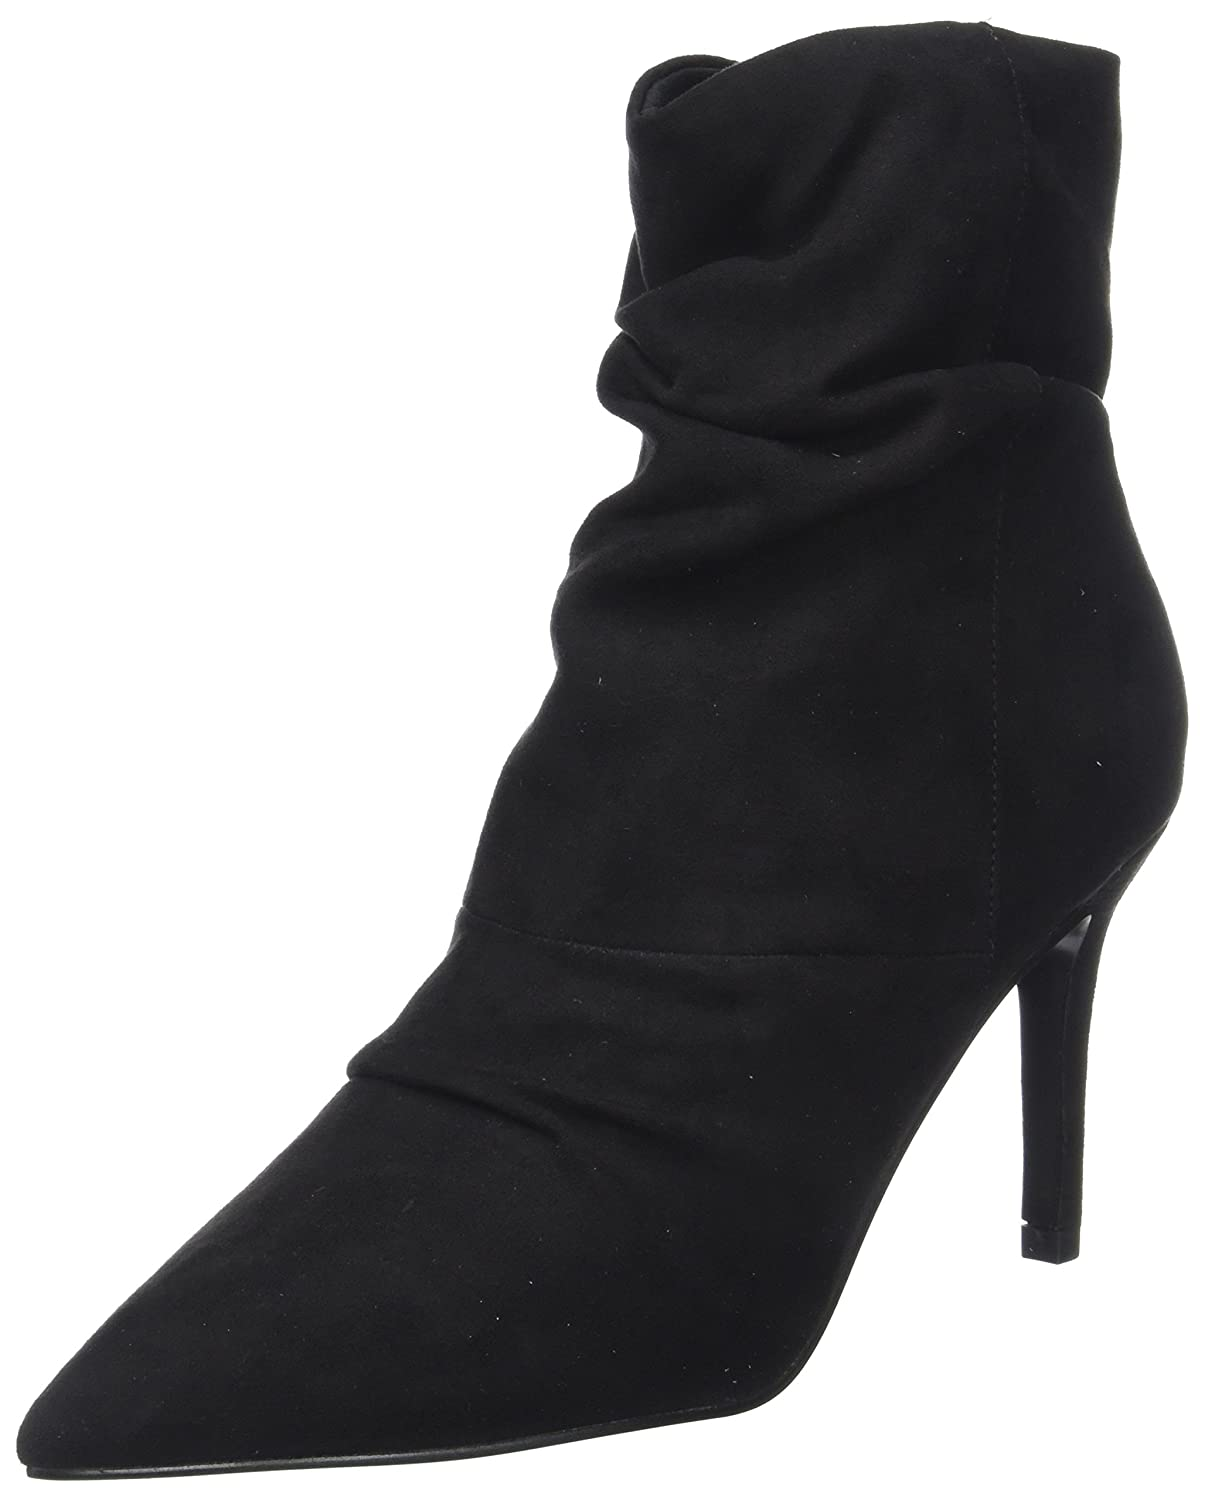 Miss Selfridge Ruched, Selfridge Bottines Femme Noir Miss (Black Ruched, Black) 1a020ba - piero.space